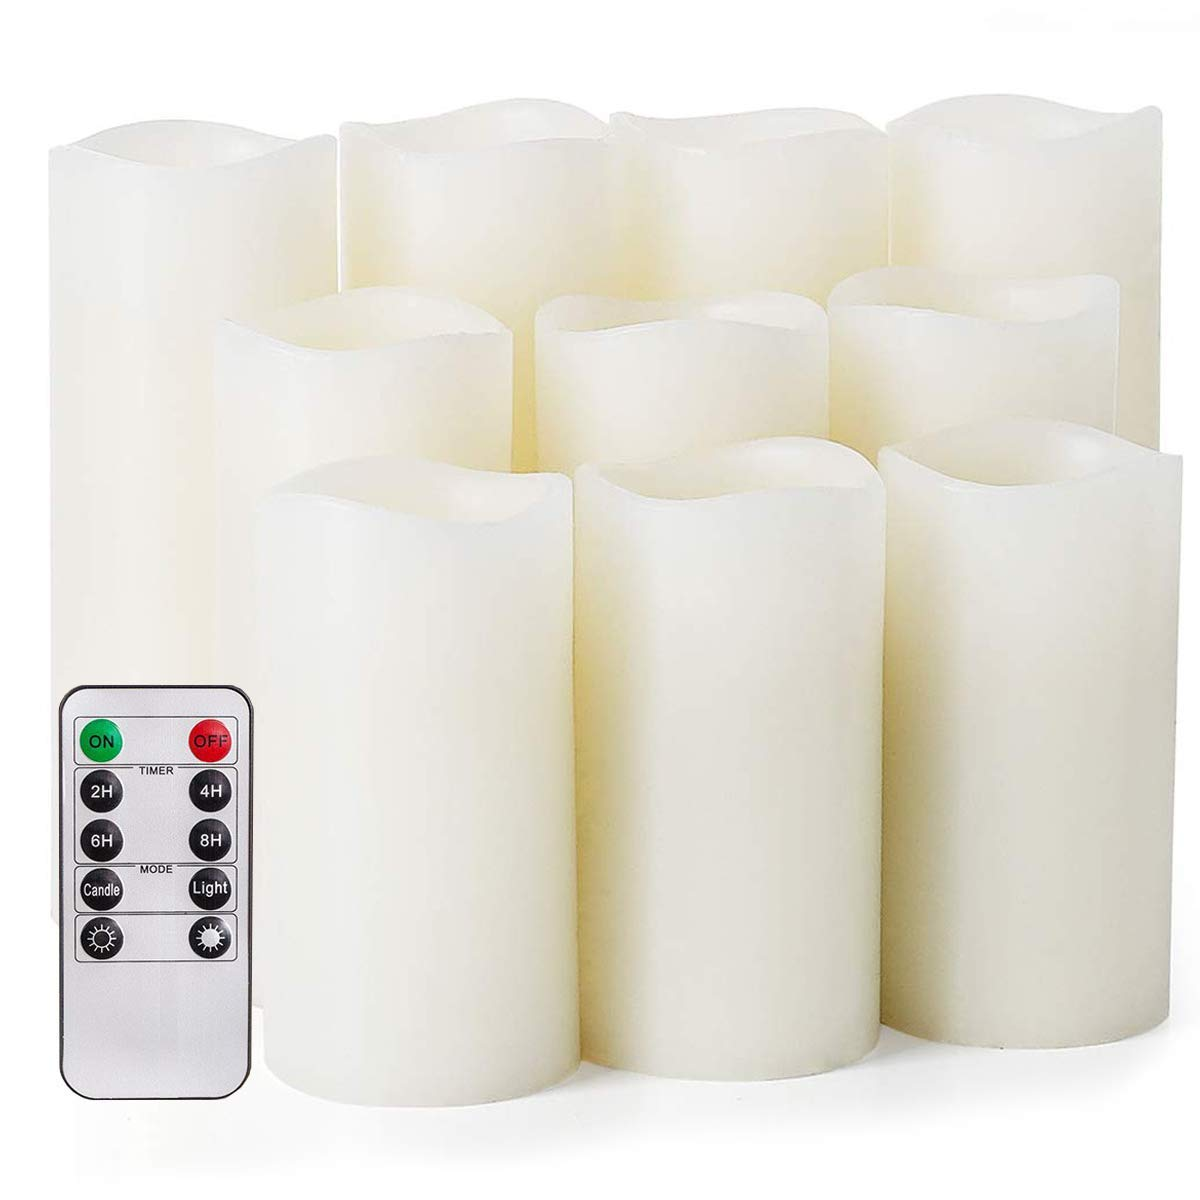 Flameless Candles,Salipt LED Flickering Candles Set of 10 (H 4'' 5'' 6'' xD 2.2'') Ivory Real Wax Battery Operated Candles with Remote Timer (Batteries not Included) by Salipt